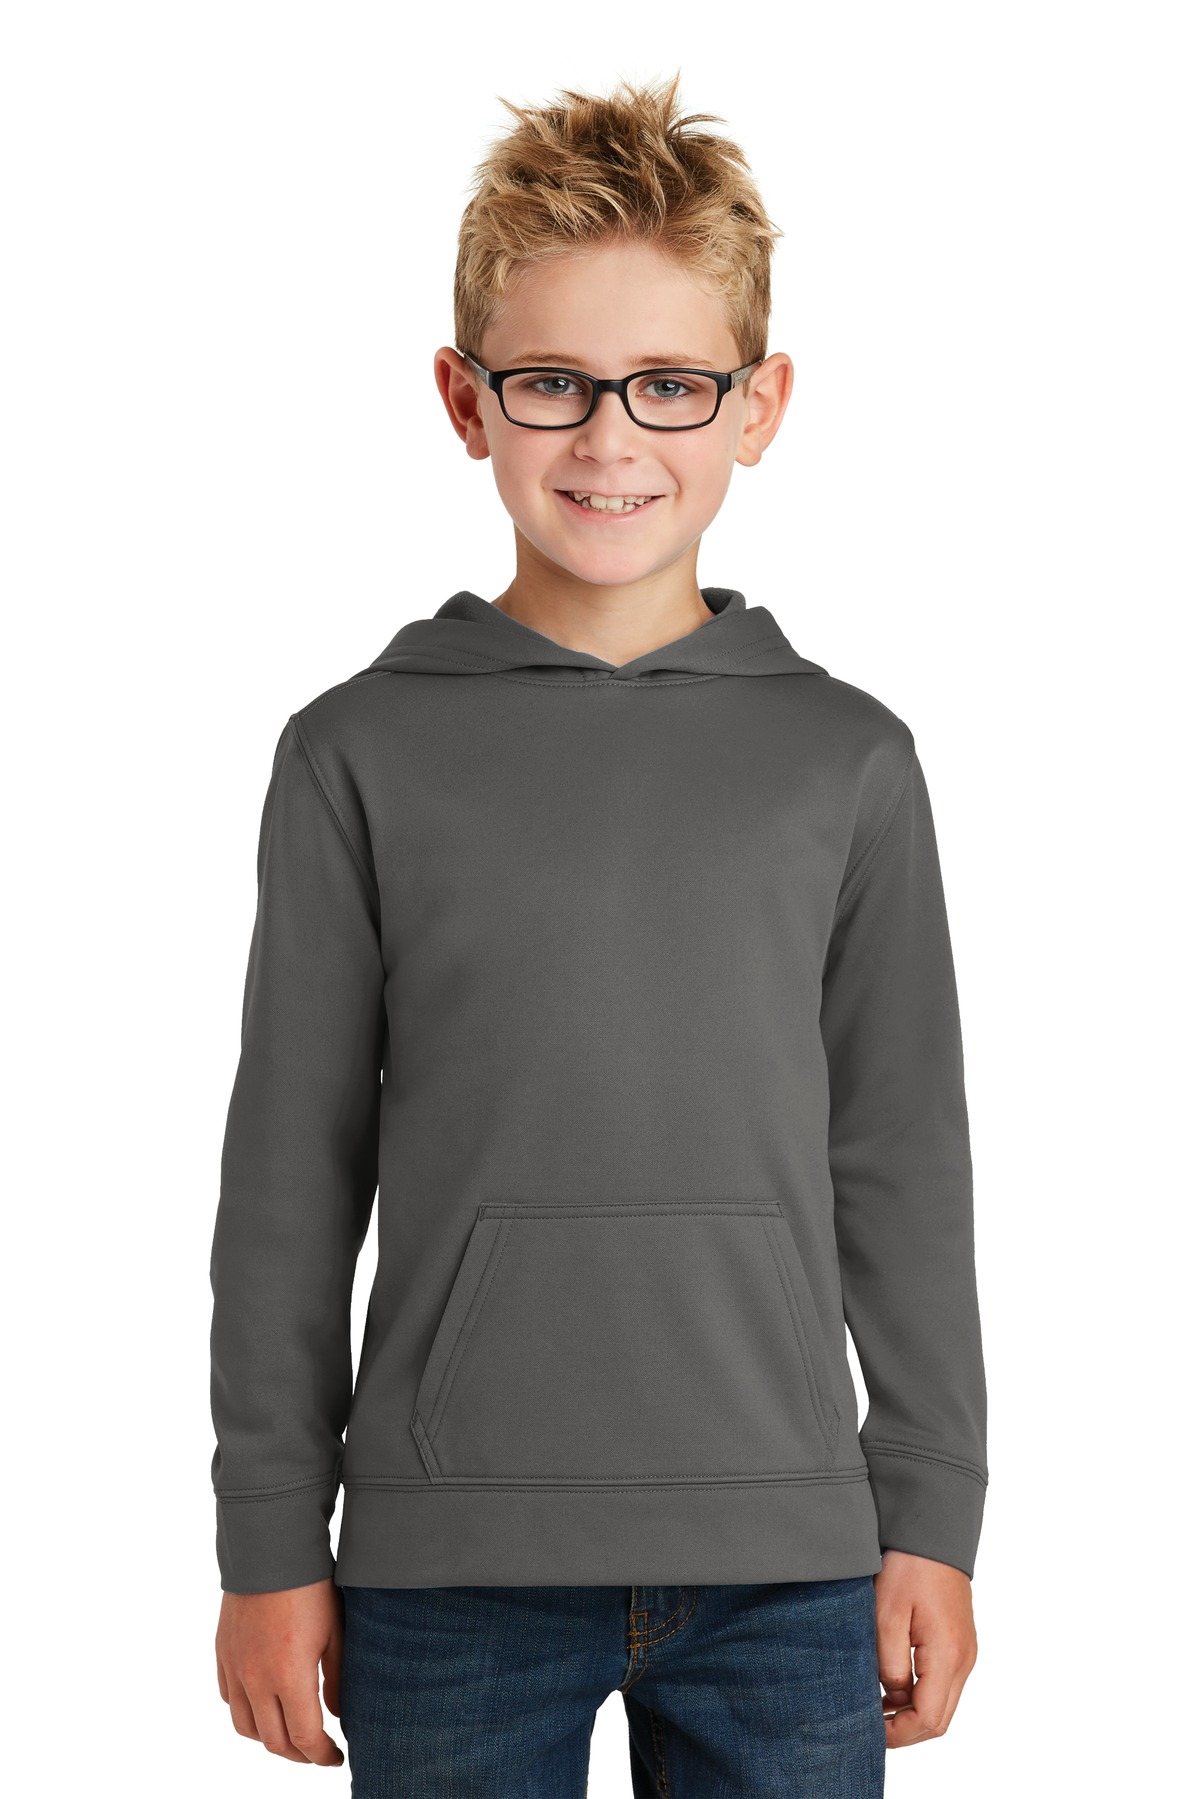 Port & Company ® Youth Performance Fleece Pullover Hooded Sweatshirt. PC590YH - Charcoal